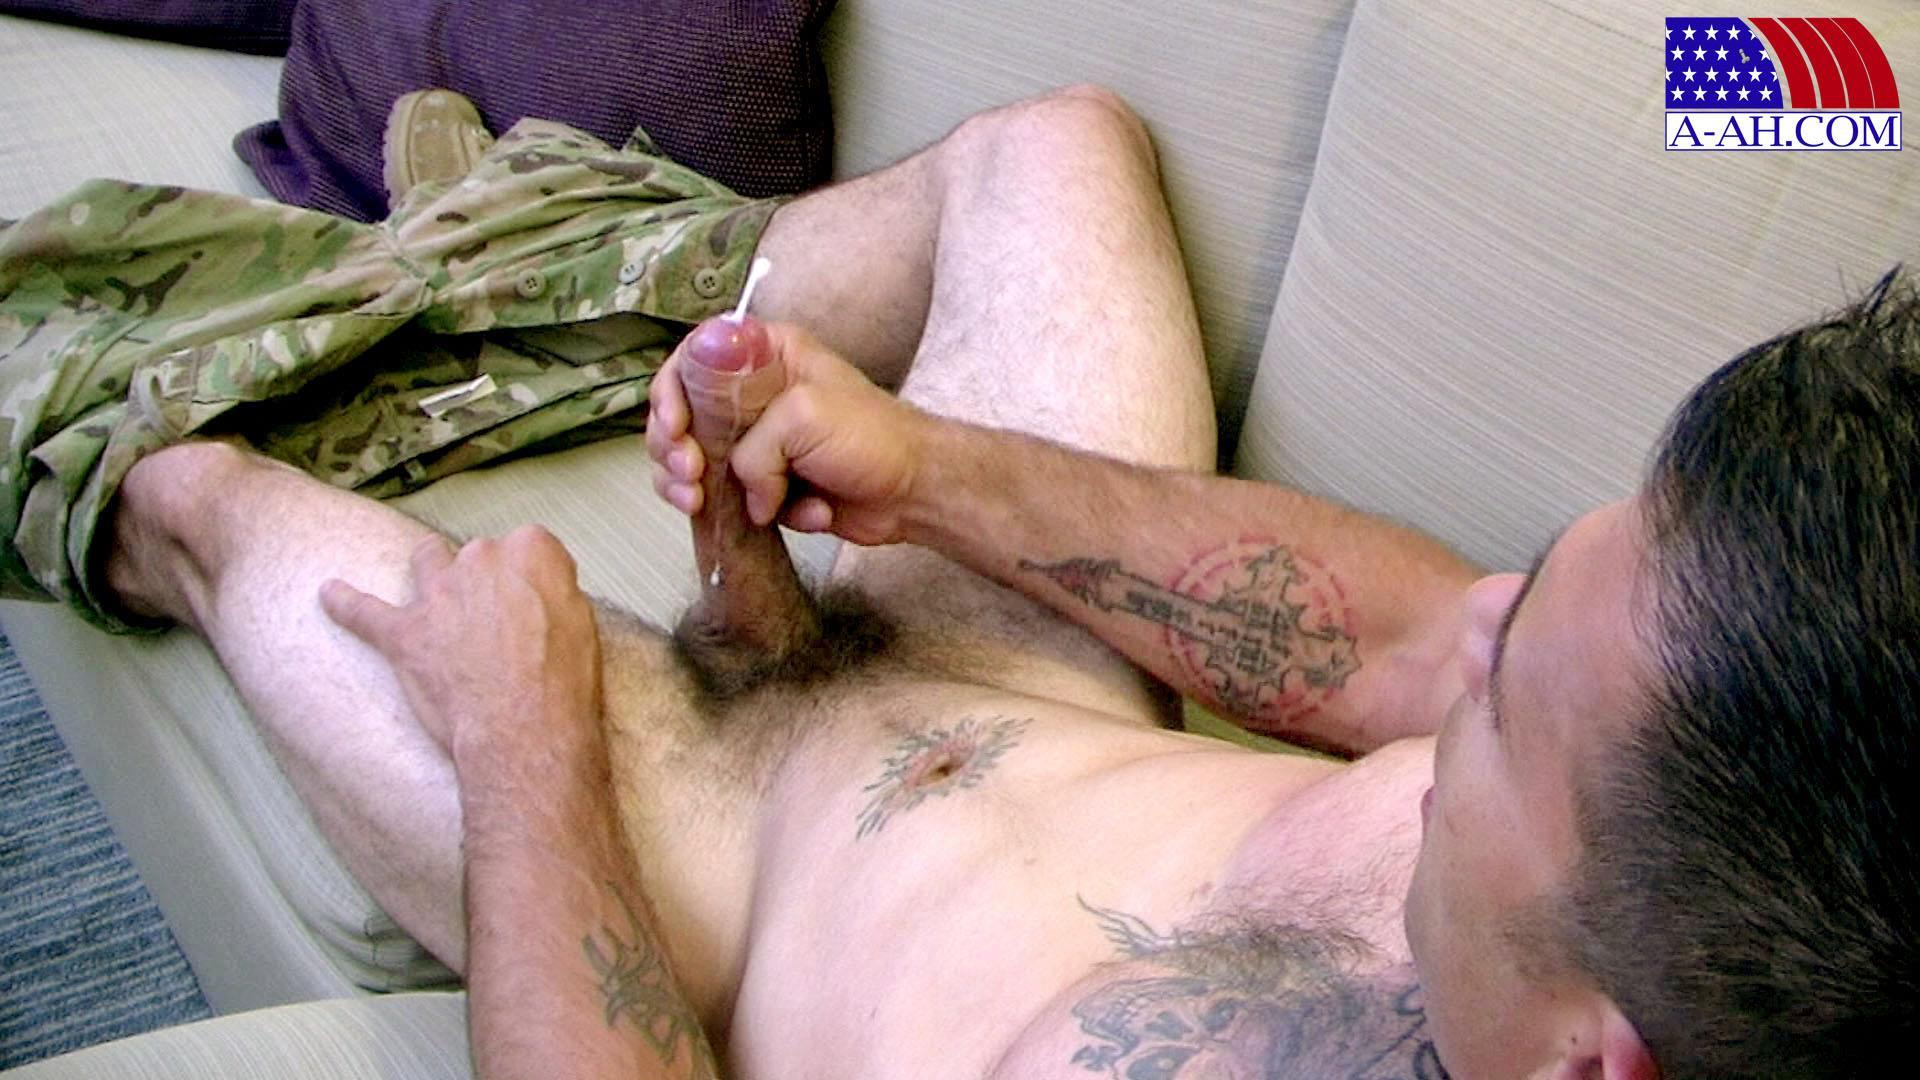 All-American-Heroes-JB-US-Amry-Soldier-Jerking-His-Big-Uncut-Cock-Amateur-Gay-Porn-15 Amateur Straight US Army Specialist Stroking His Big Uncut Cock